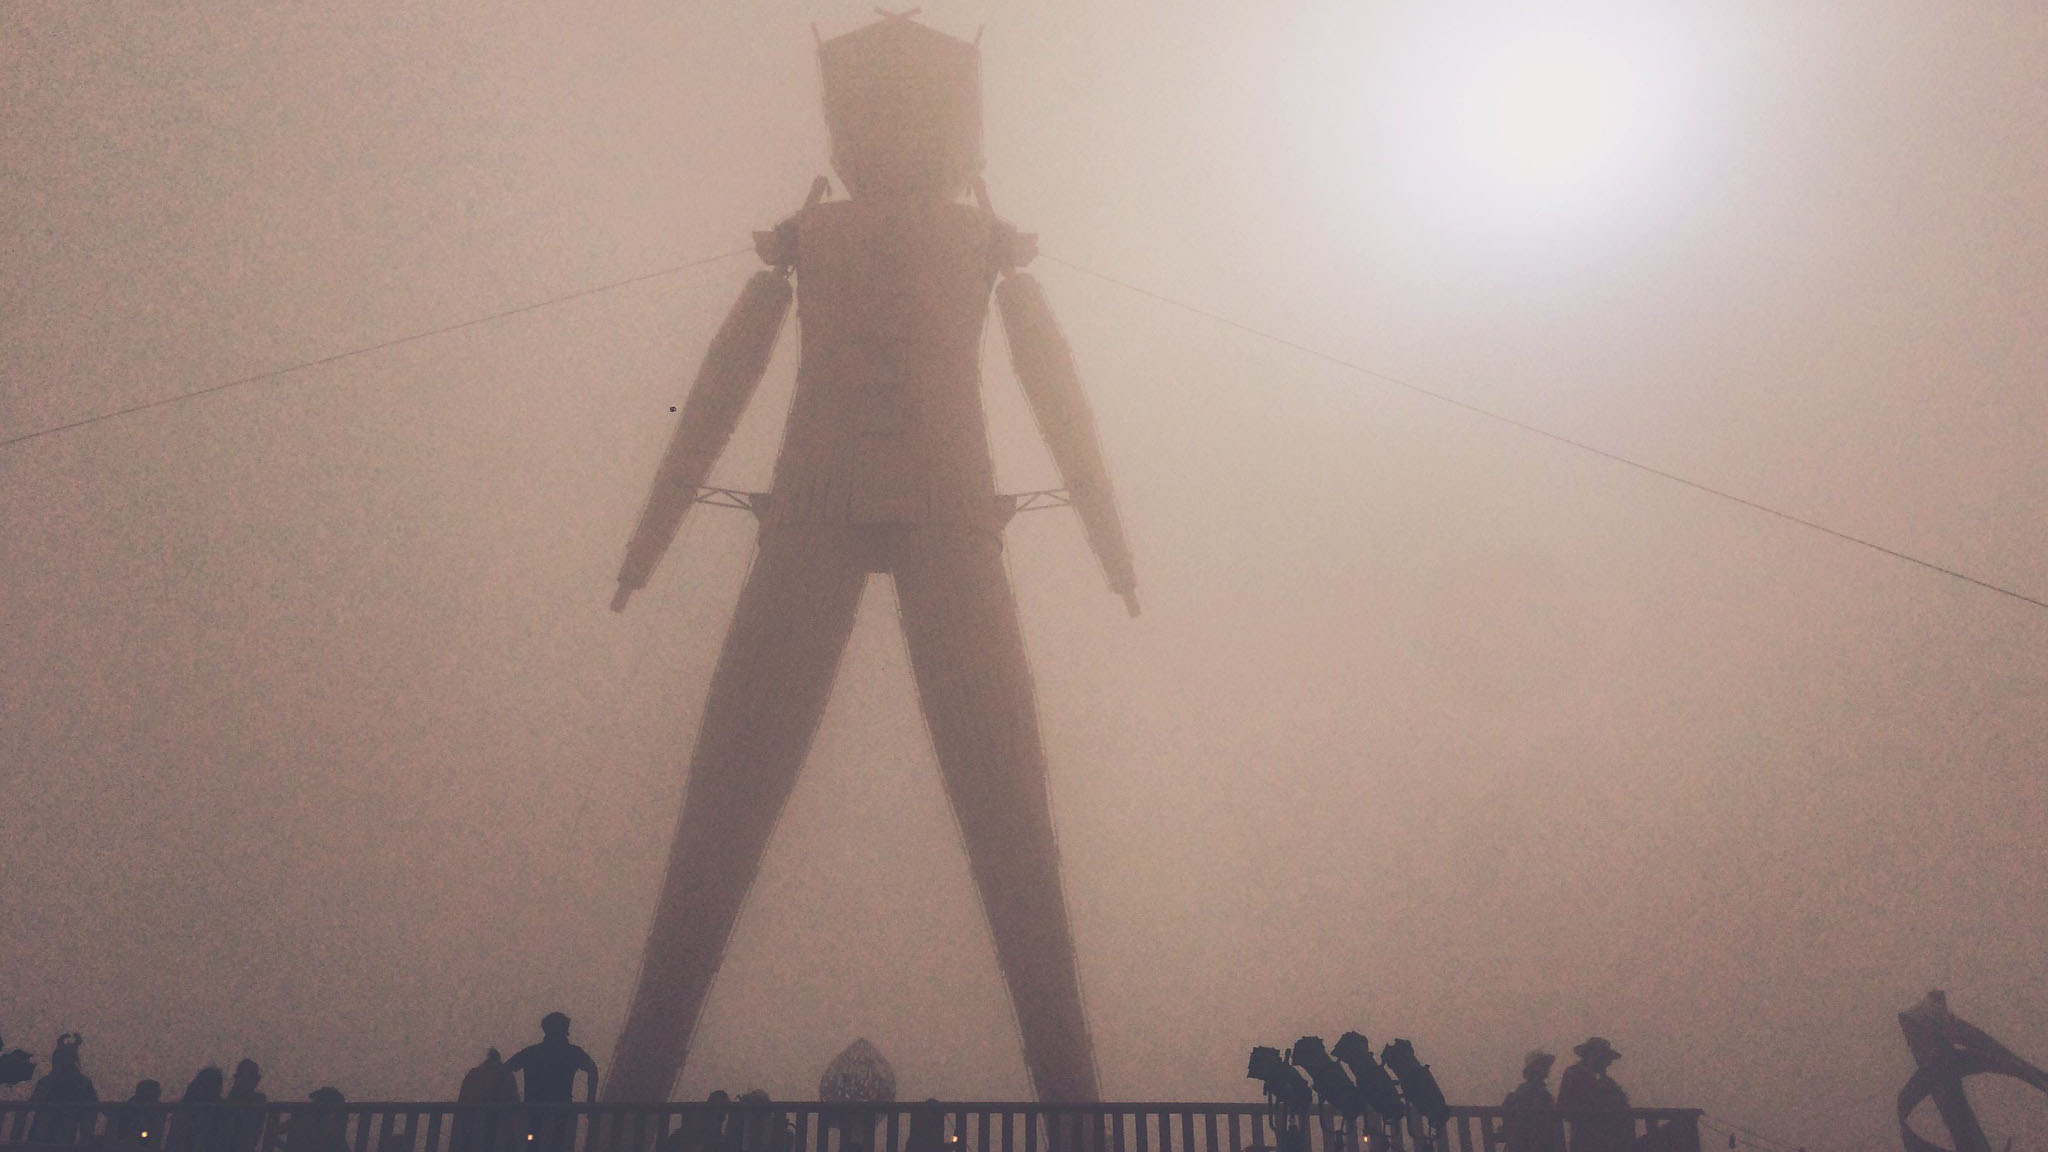 The iconic Burning Man stands over the festival. Photo by Kevin Cheng